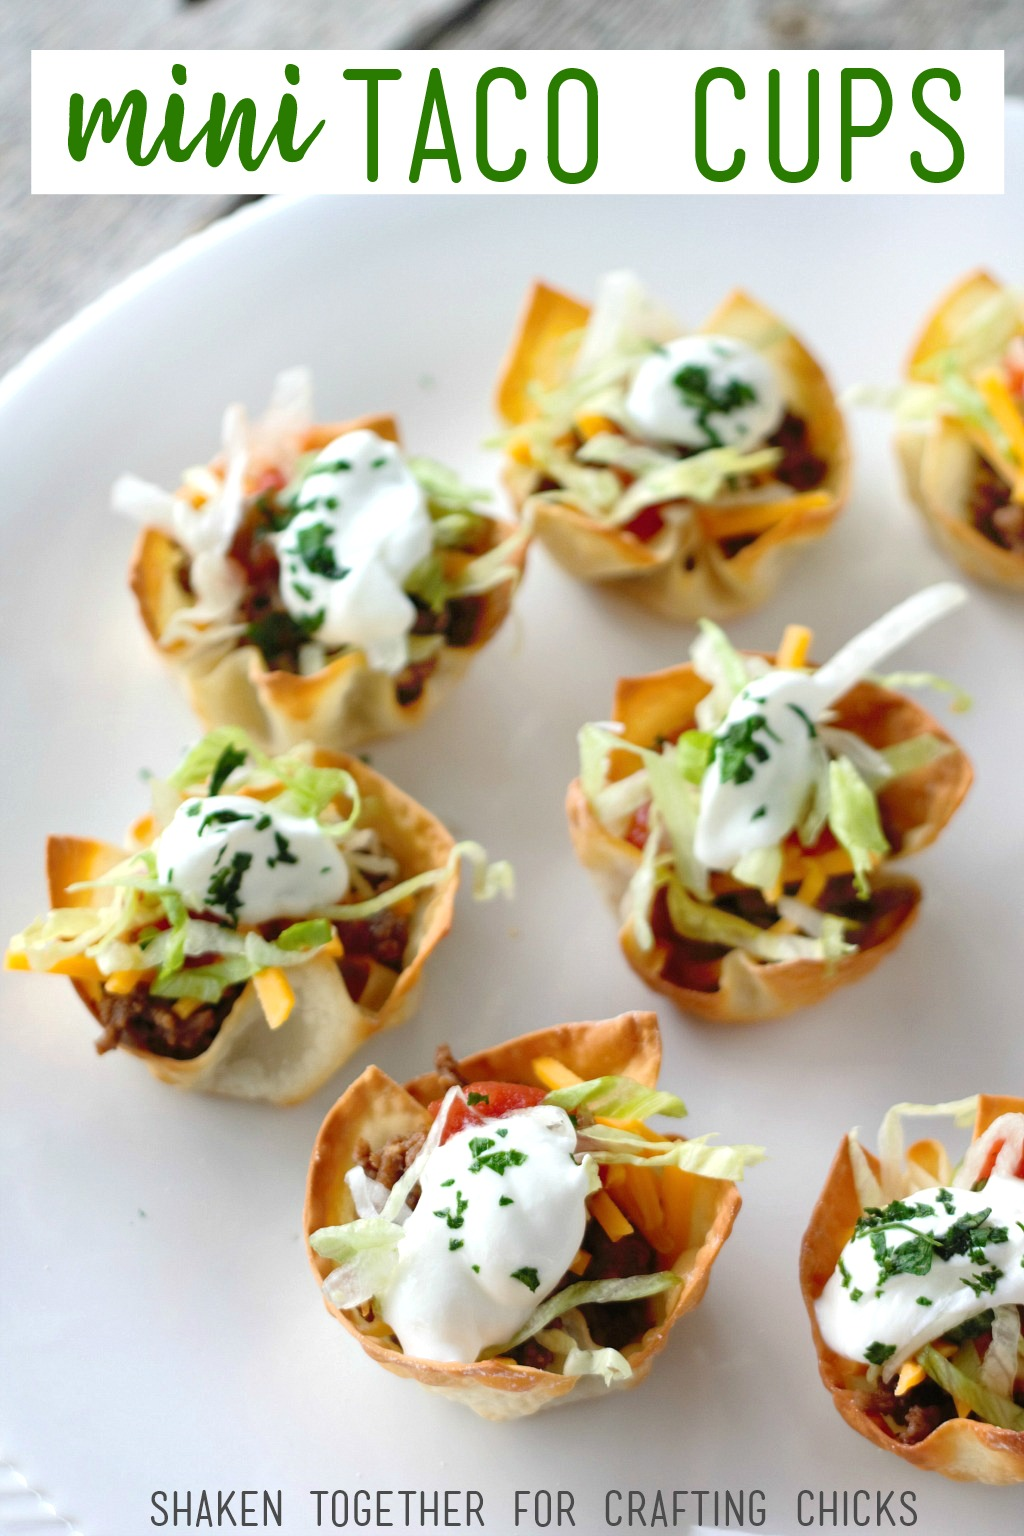 Mini Taco Cups are such an easy appetizer! Fill crispy wonton cups with meat, cheese and all of your favorite taco toppings! Great for New Years Eve or the big game!